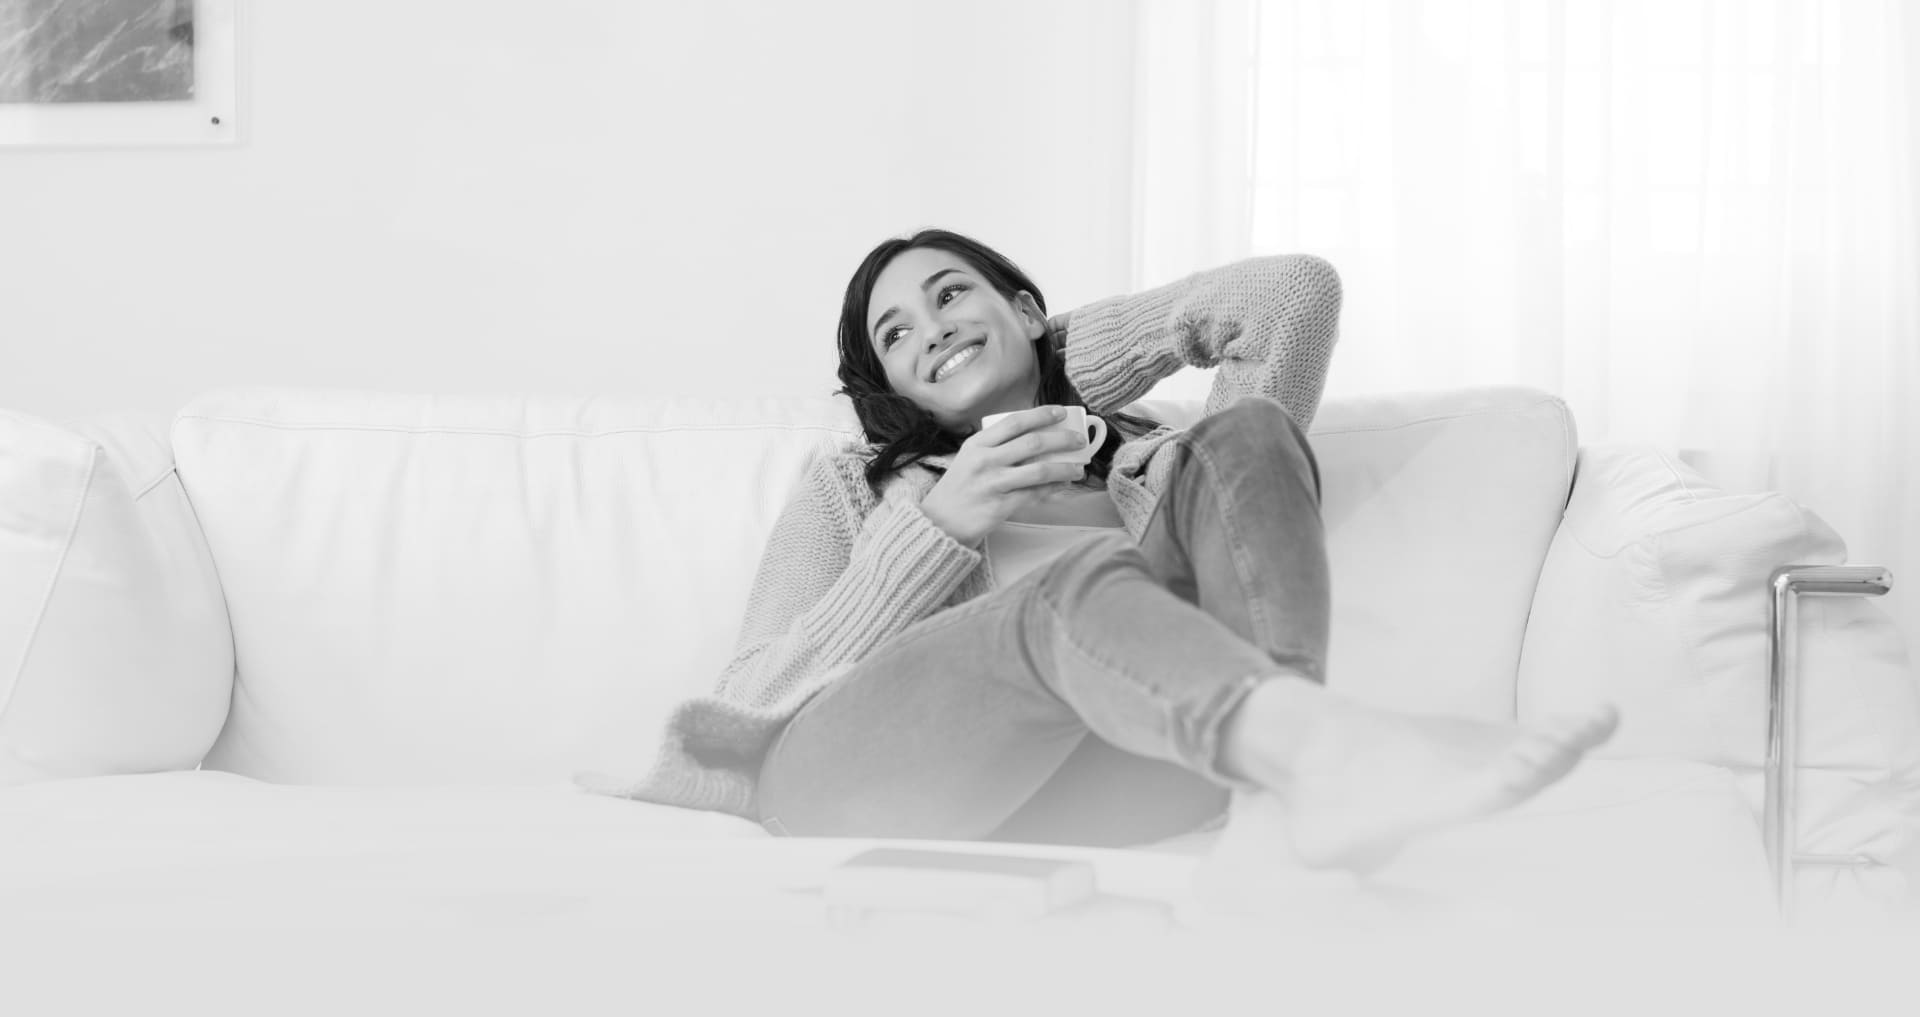 A young woman reclines on a sofa, smiling and relaxed.